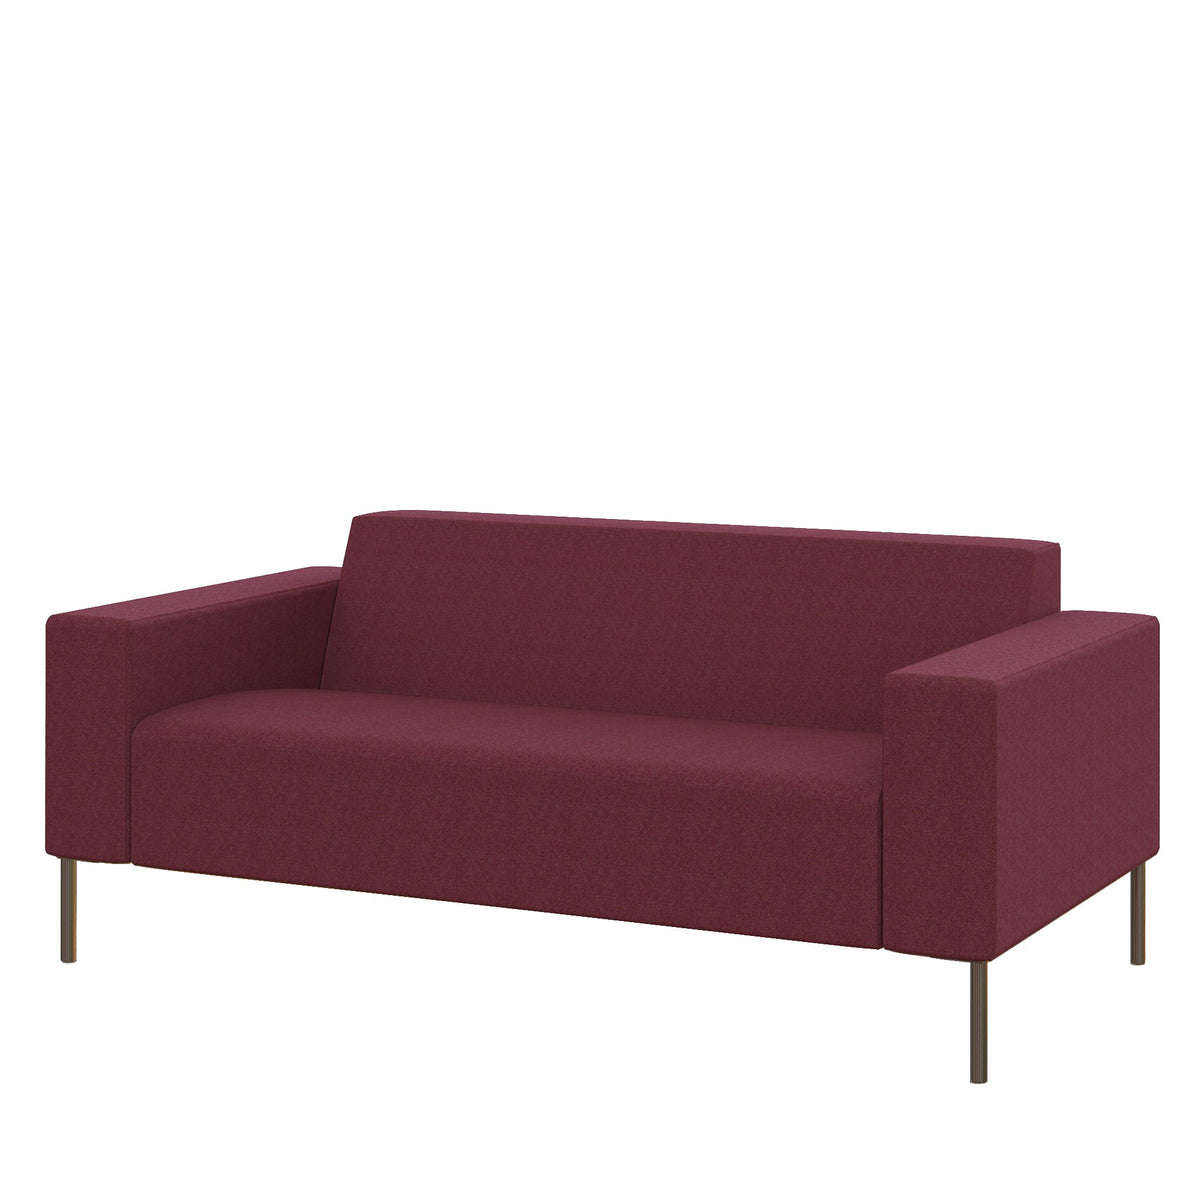 Hitch Mylius Office HM18 Wembley Origin Two Seat Sofa with Brushed Stainless Steel Legs